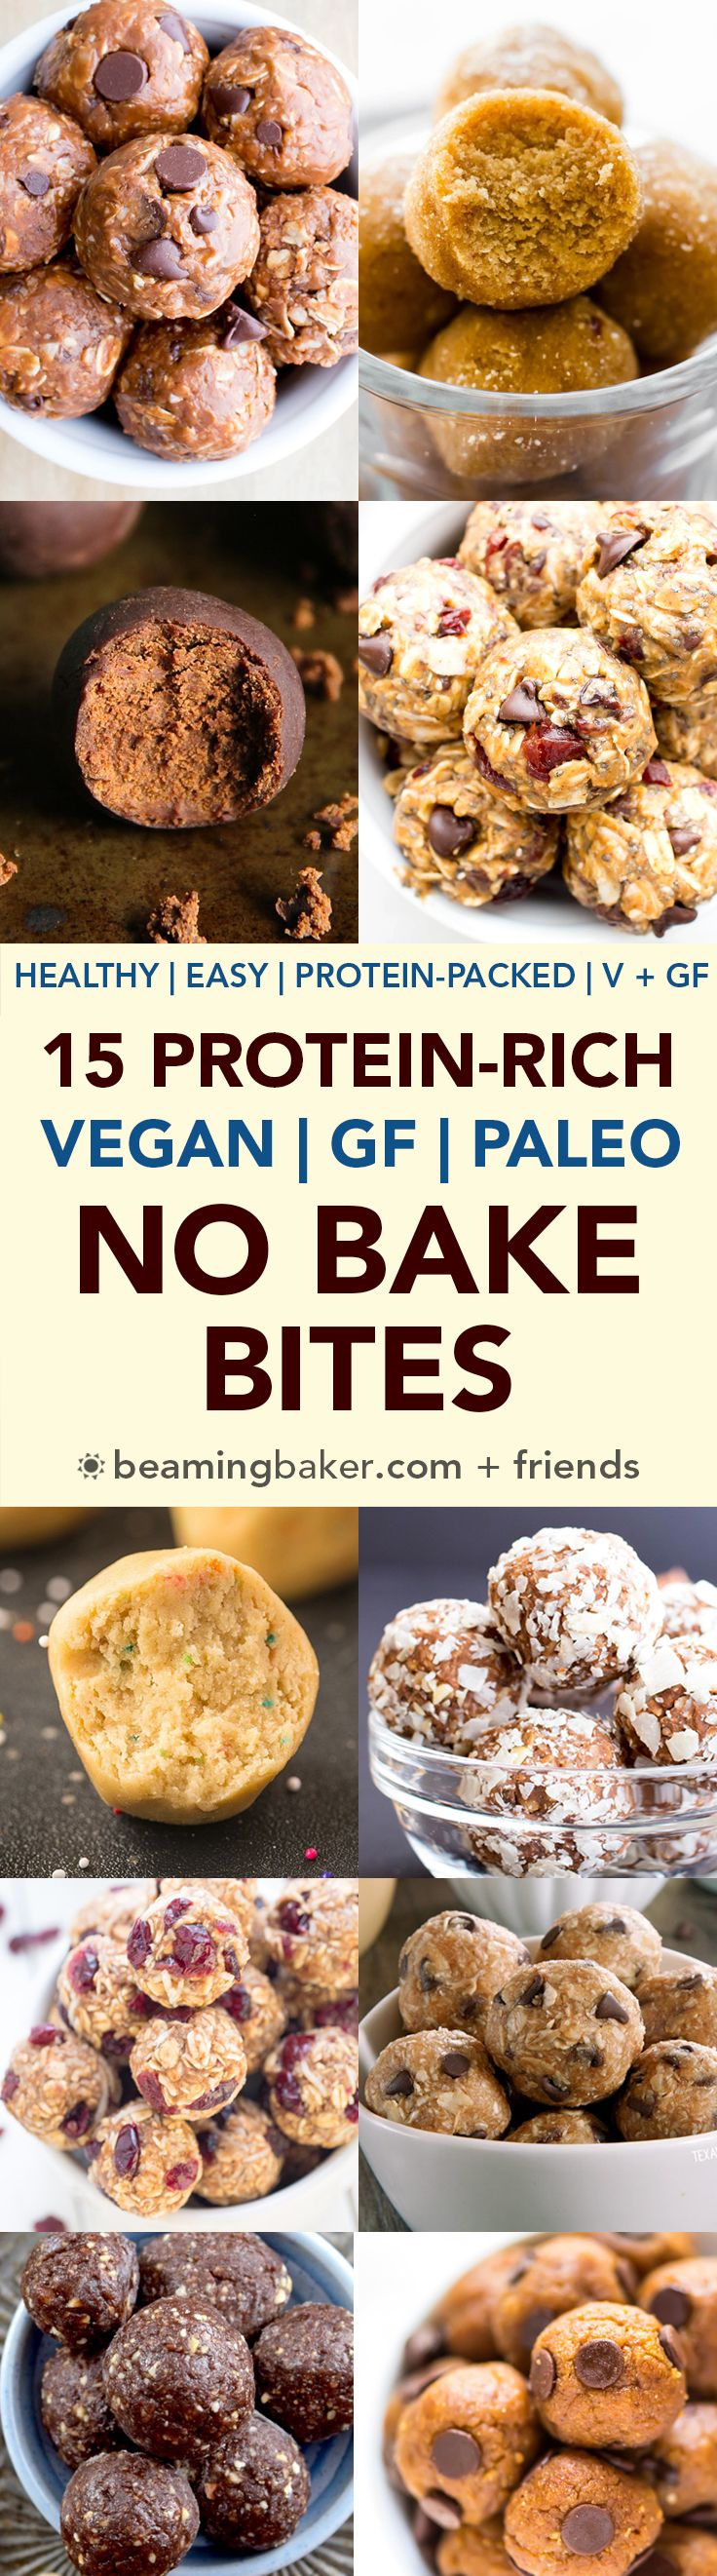 Easy healthy baked goods recipes